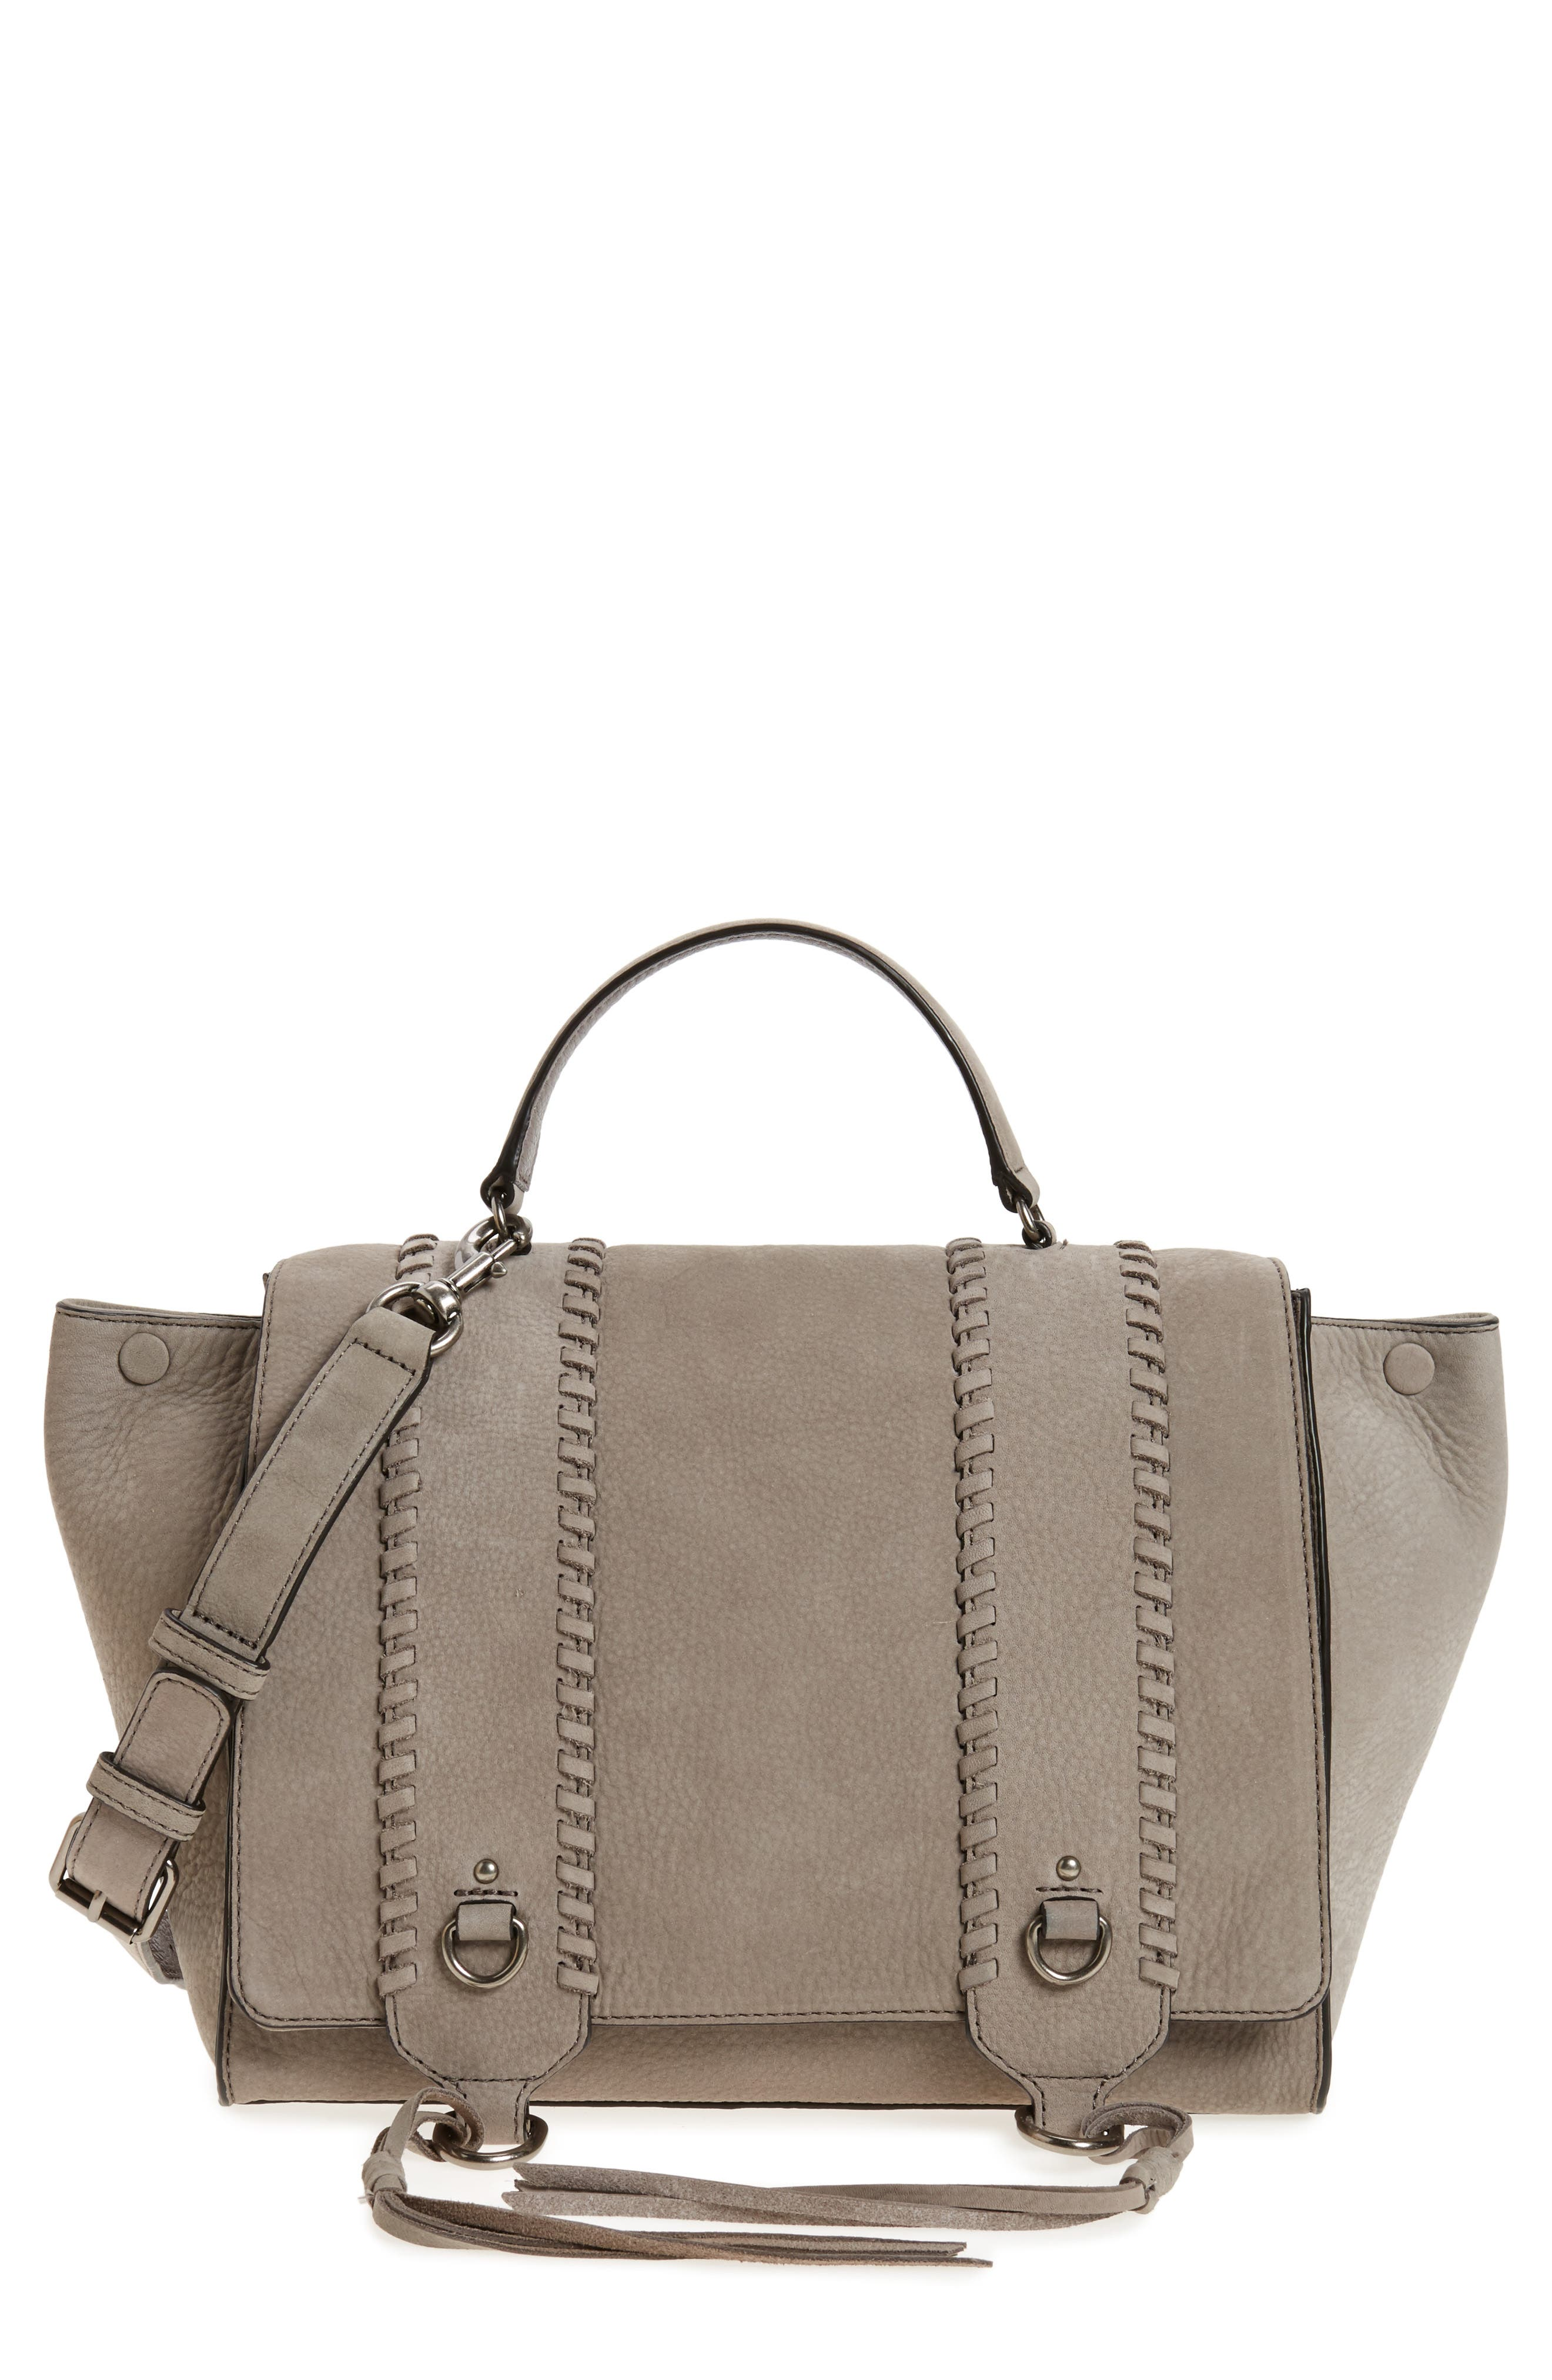 Rebecca Minkoff Paige Leather Satchel